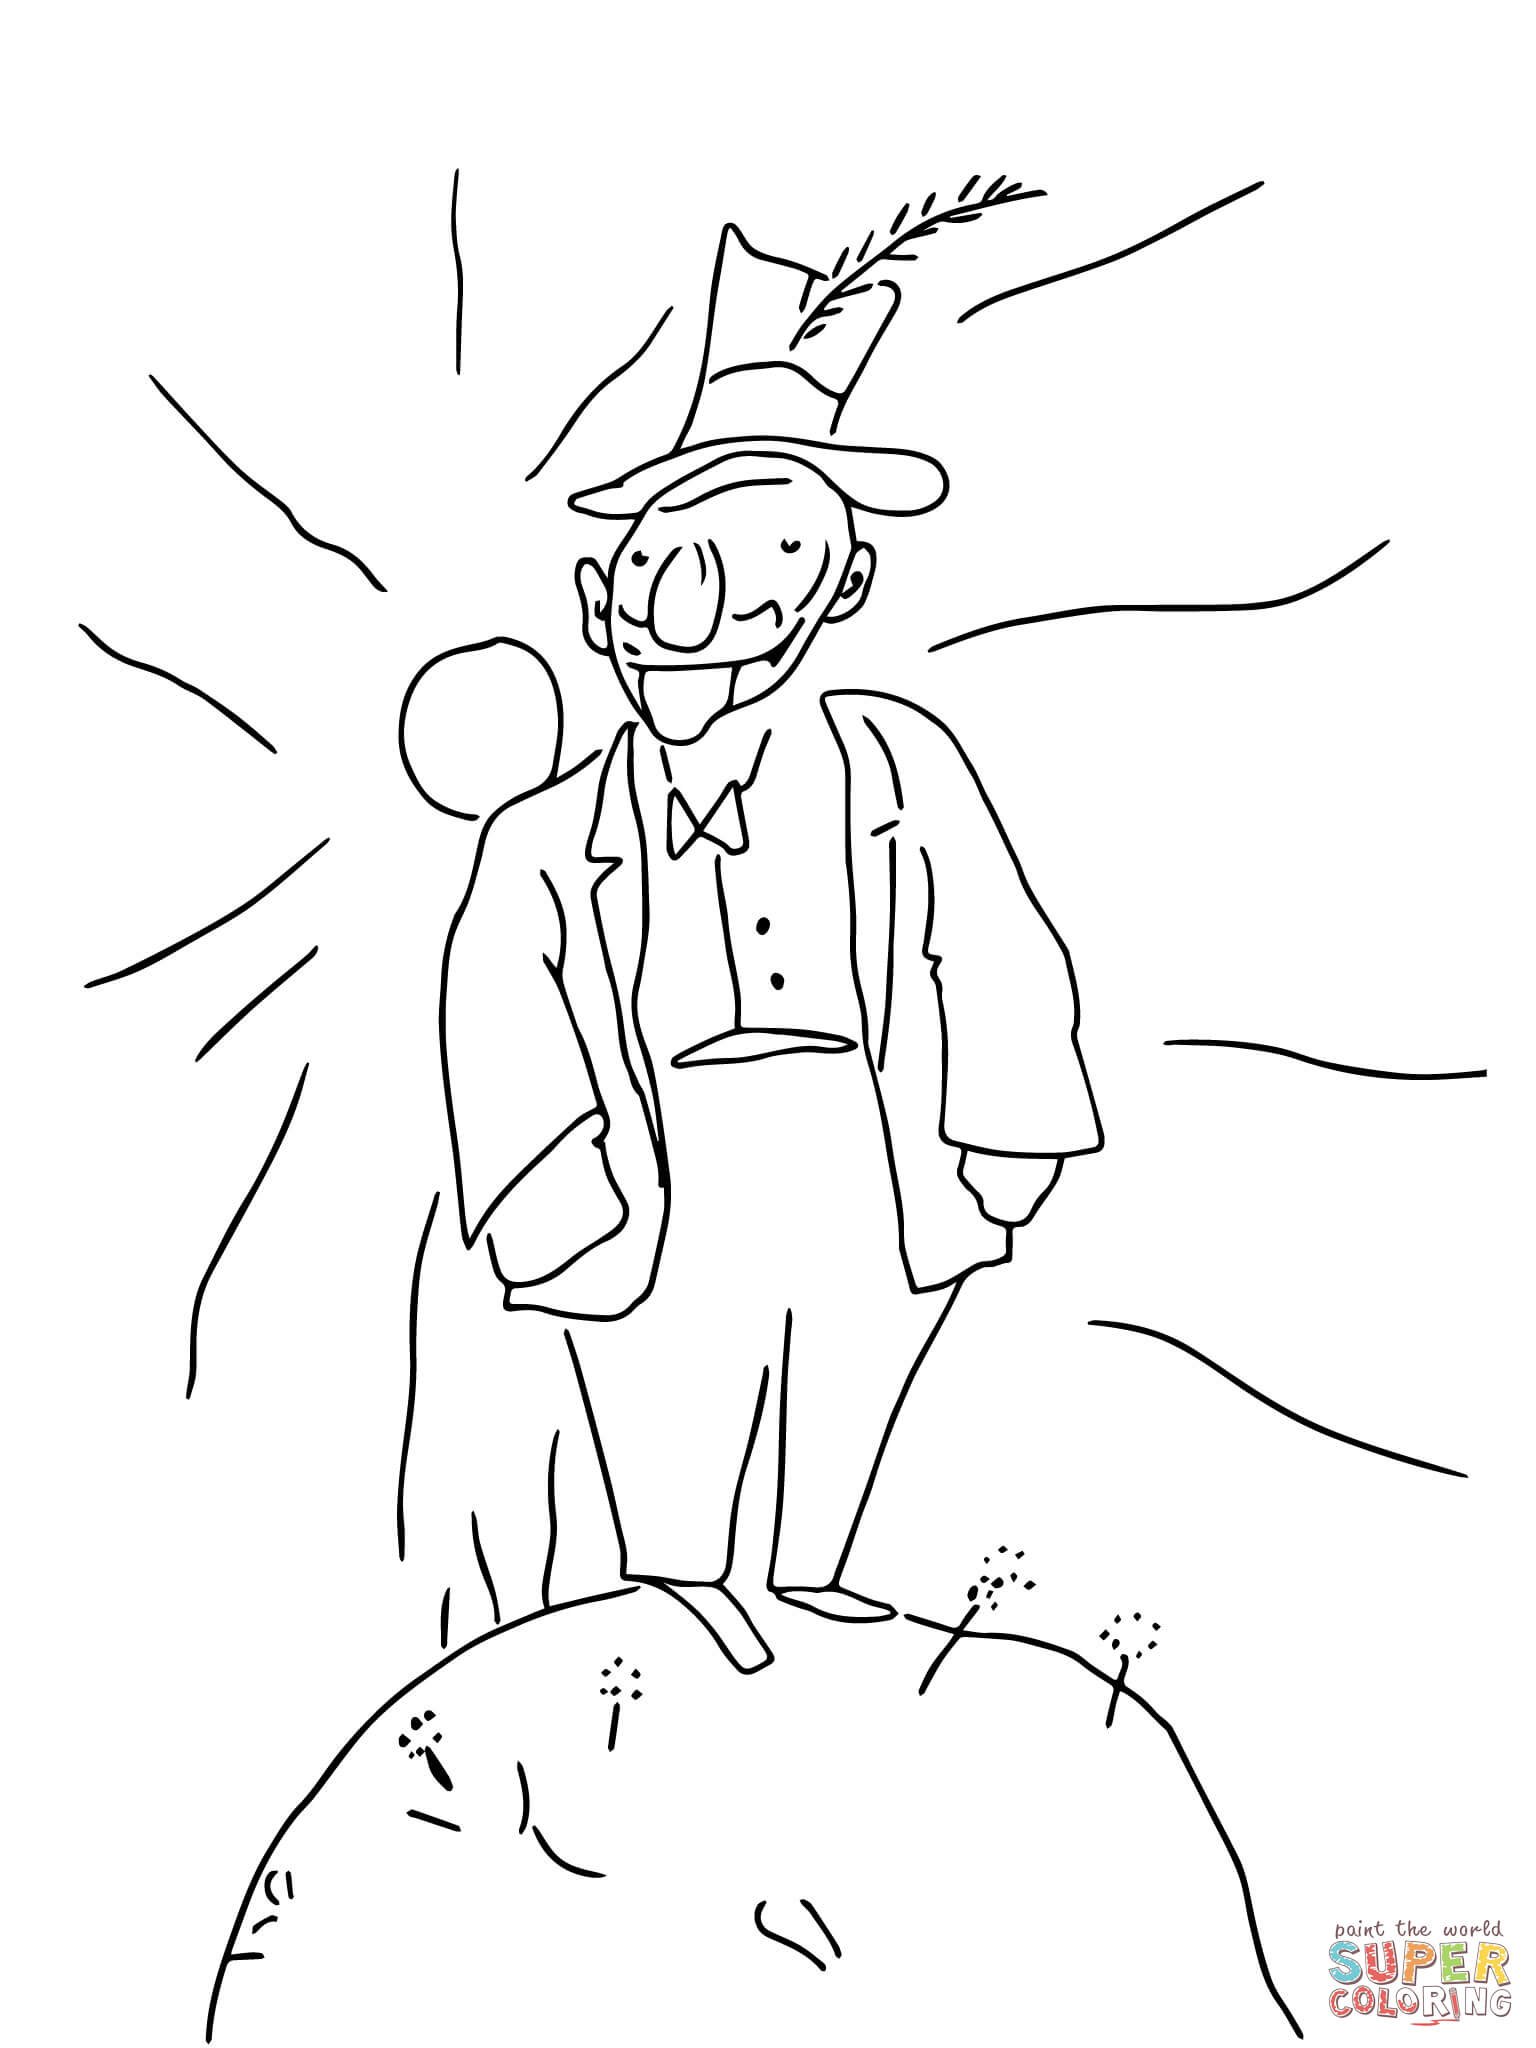 conceited man planet coloring page free printable coloring pages